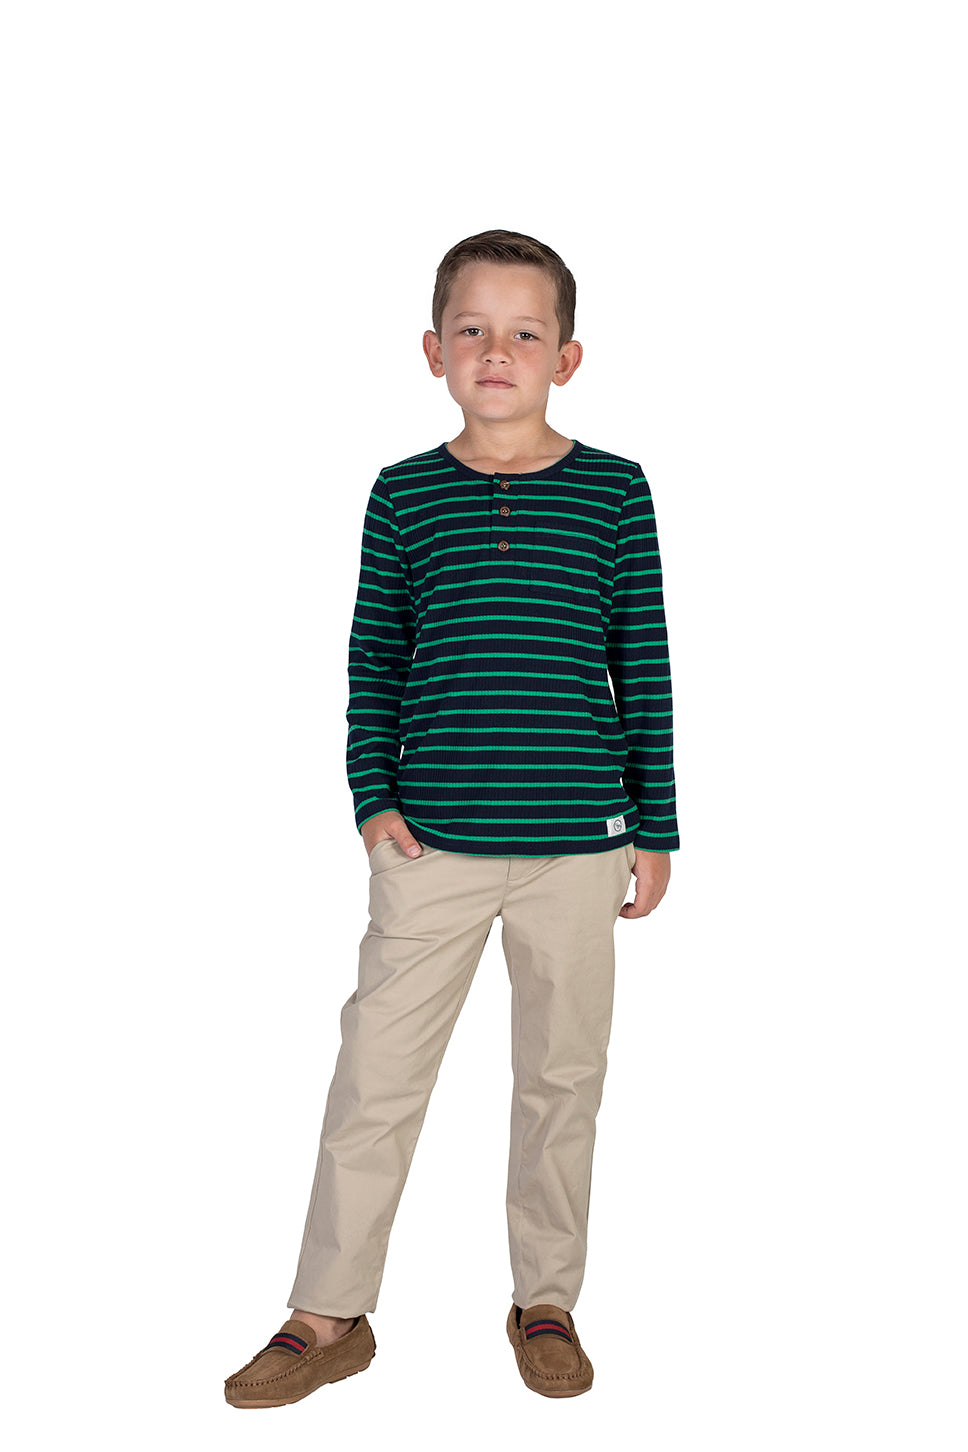 Knit Jumper Green with Blue Stripes